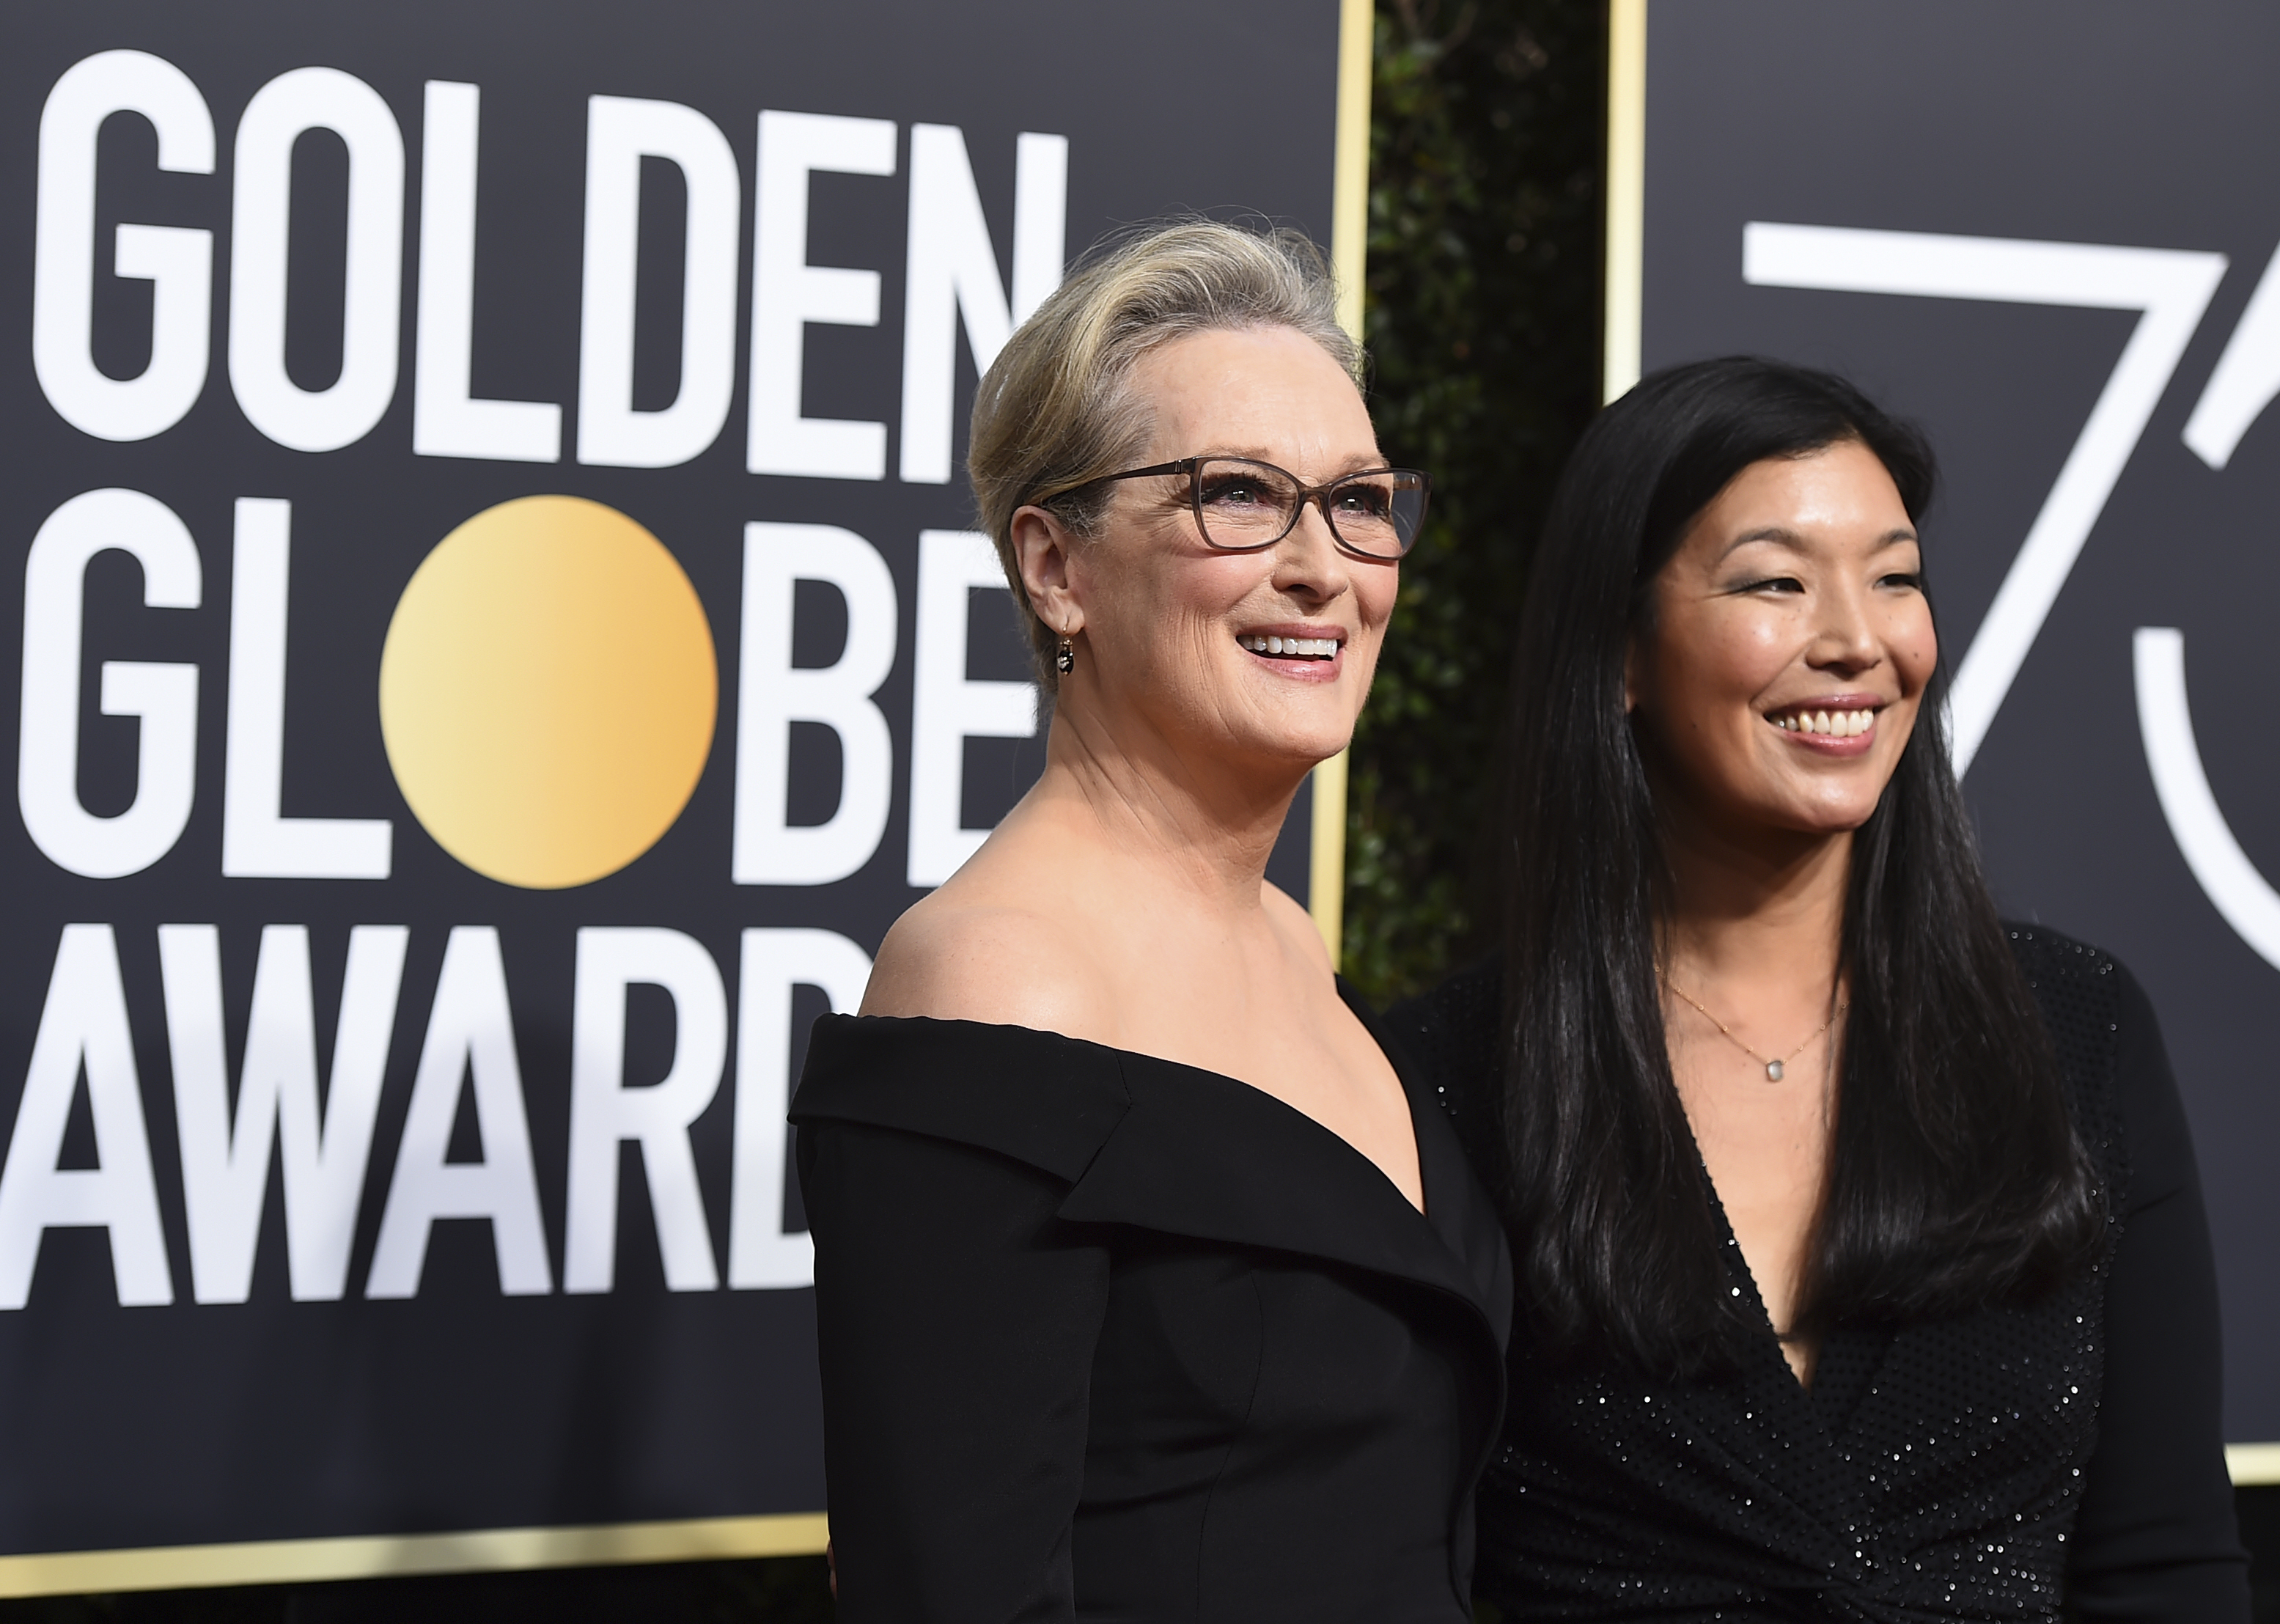 Meryl Streep left and Ai-jen Poo